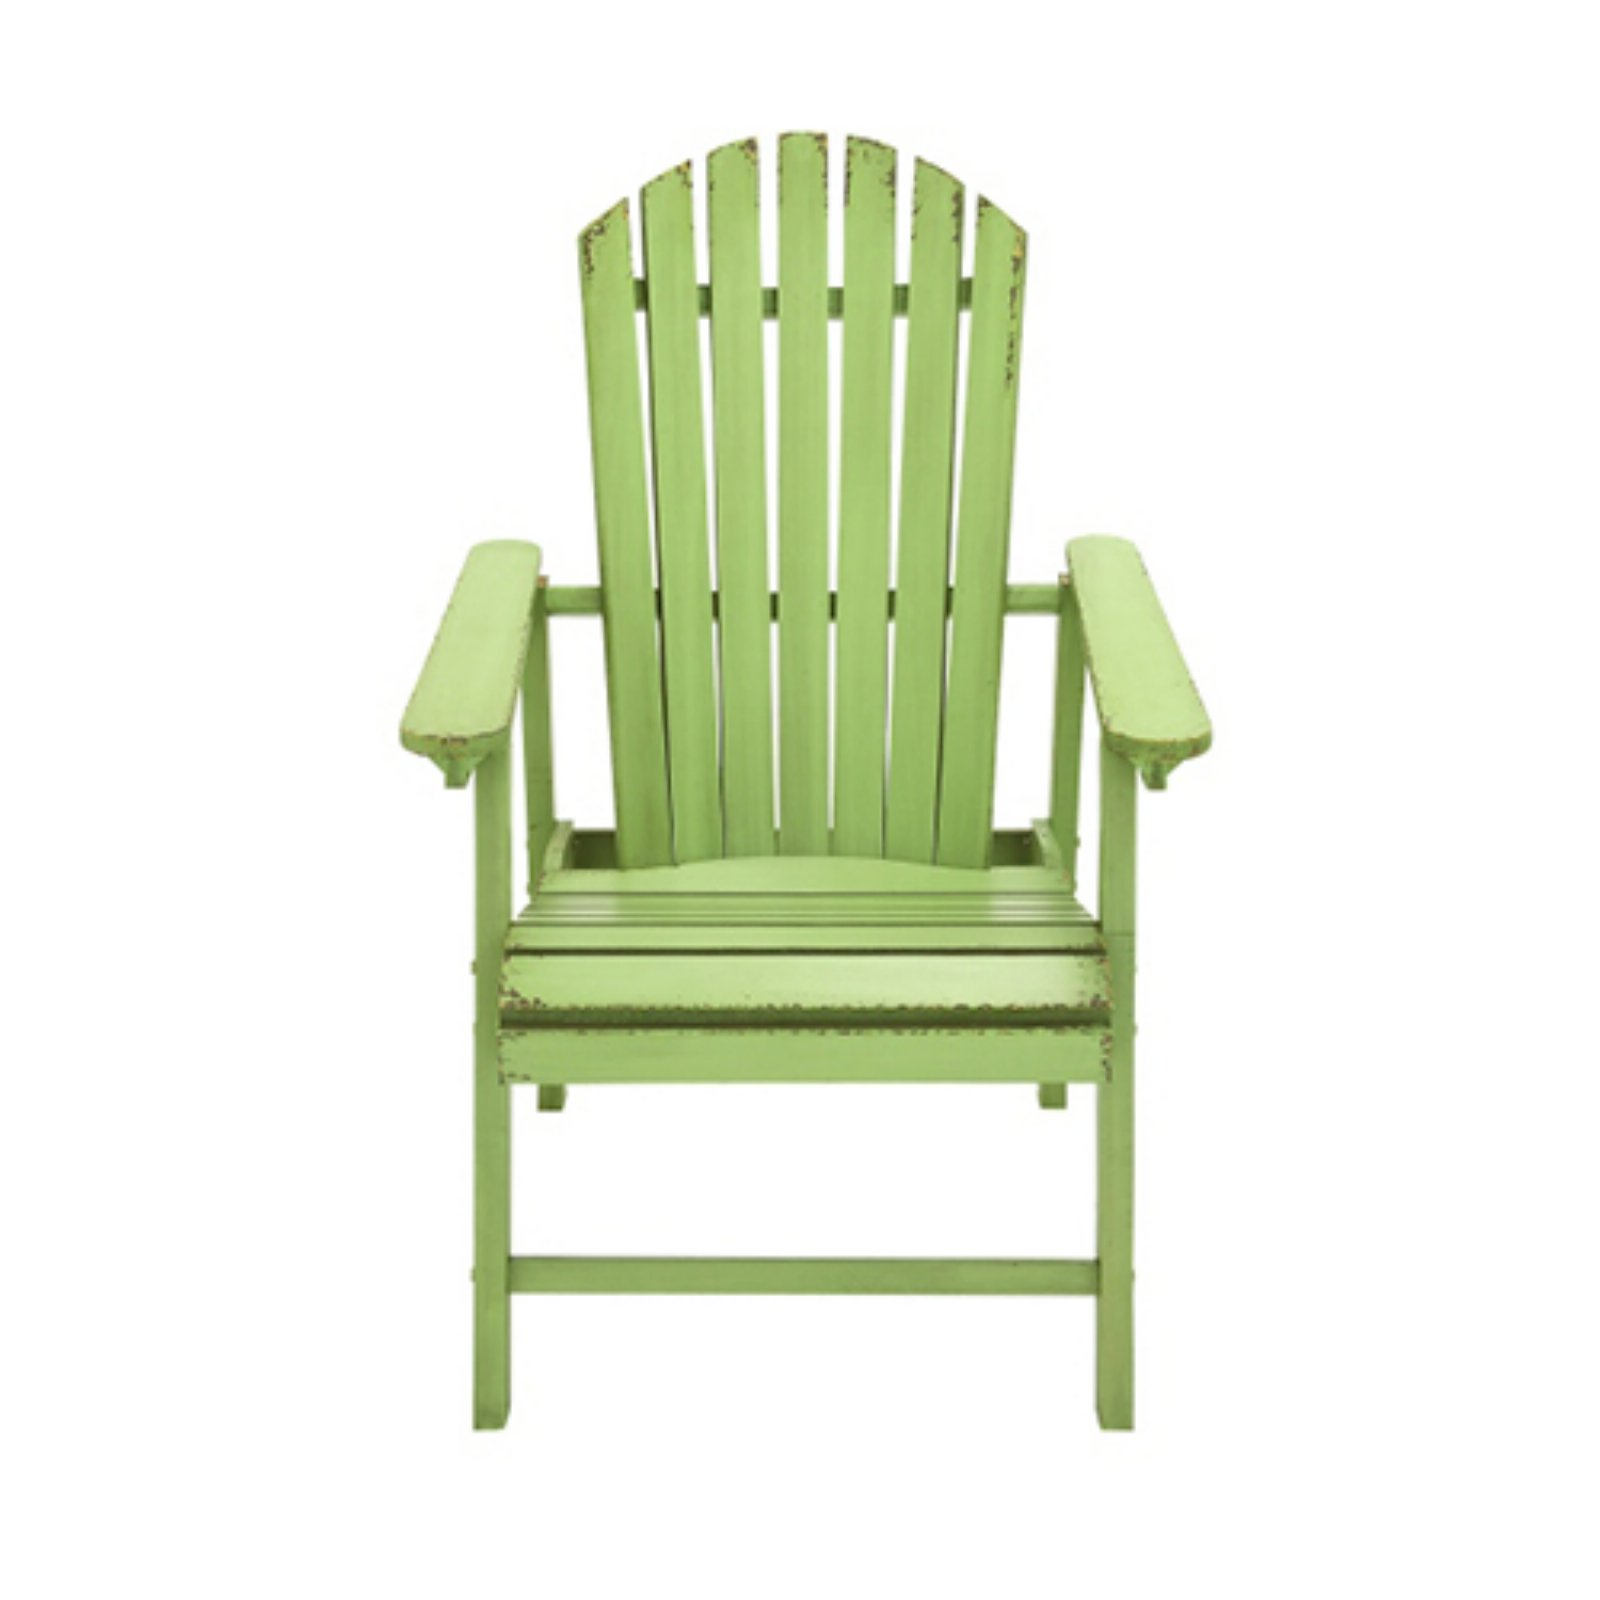 distressed adirondack chairs best lumbar support cushion for office chair decmode rustic country style patio walmart com